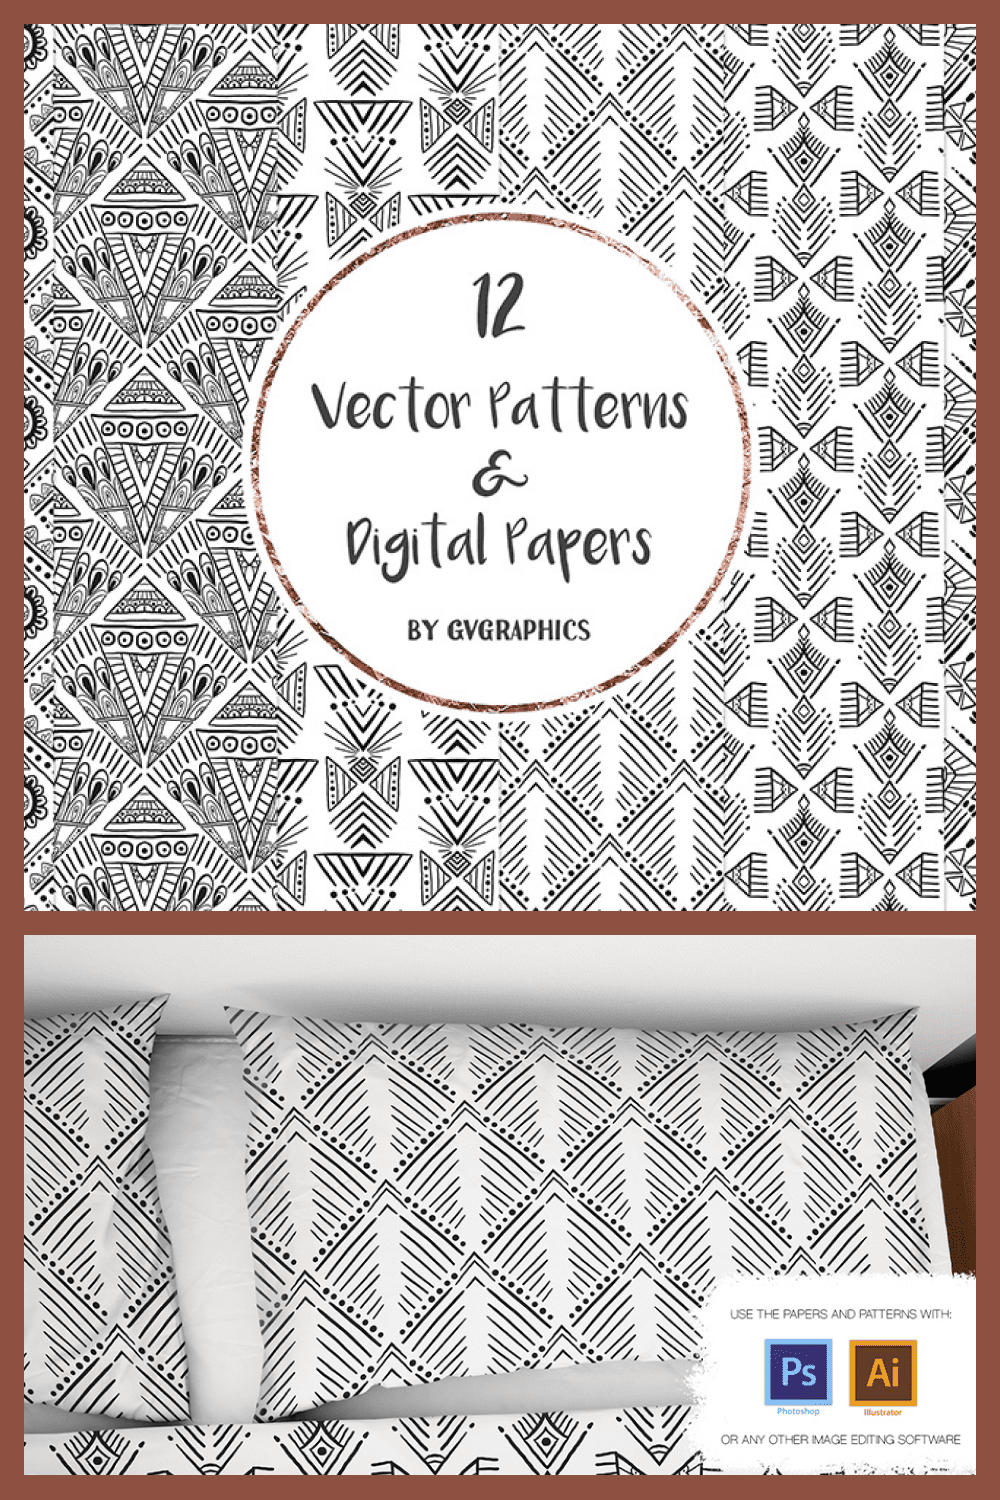 Hand Drawn Black and White Vector Patterns and Digital Papers Set 2 - MasterBundles - Pinterest Collage Image.